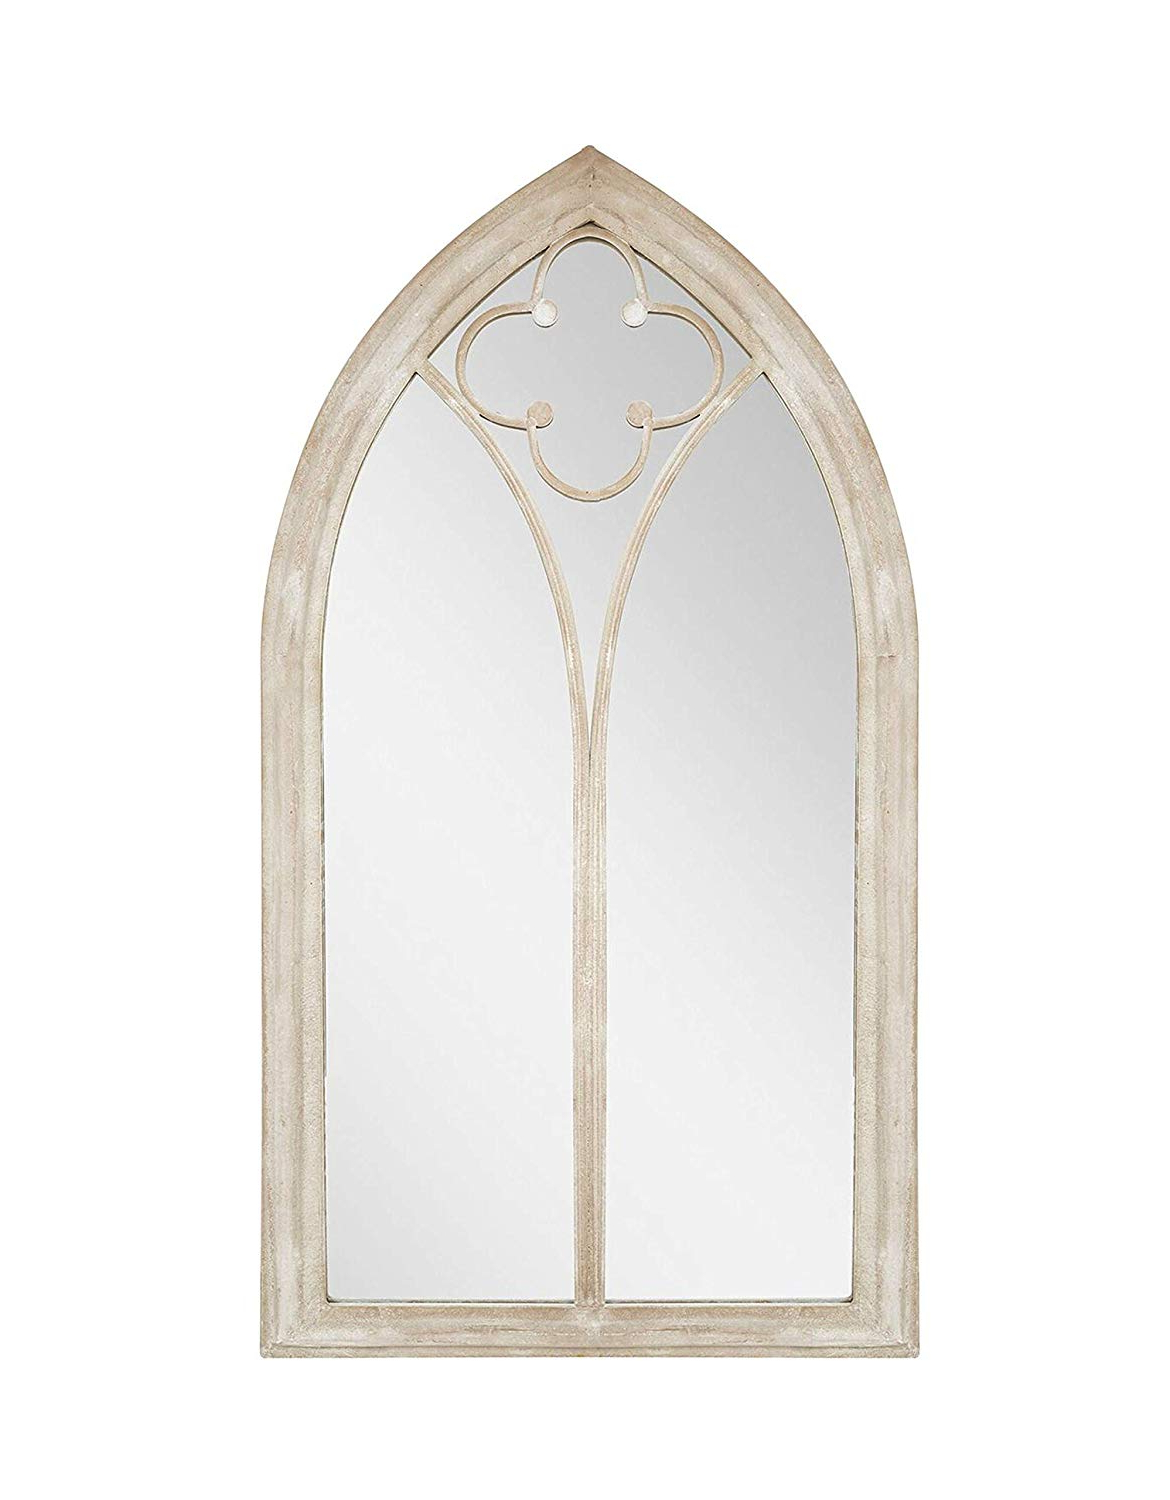 3Ft 5In X 1Ft 10In Stone Effect Steel Church Window Wall Mirror Inside Widely Used Marion Wall Mirrors (View 2 of 20)